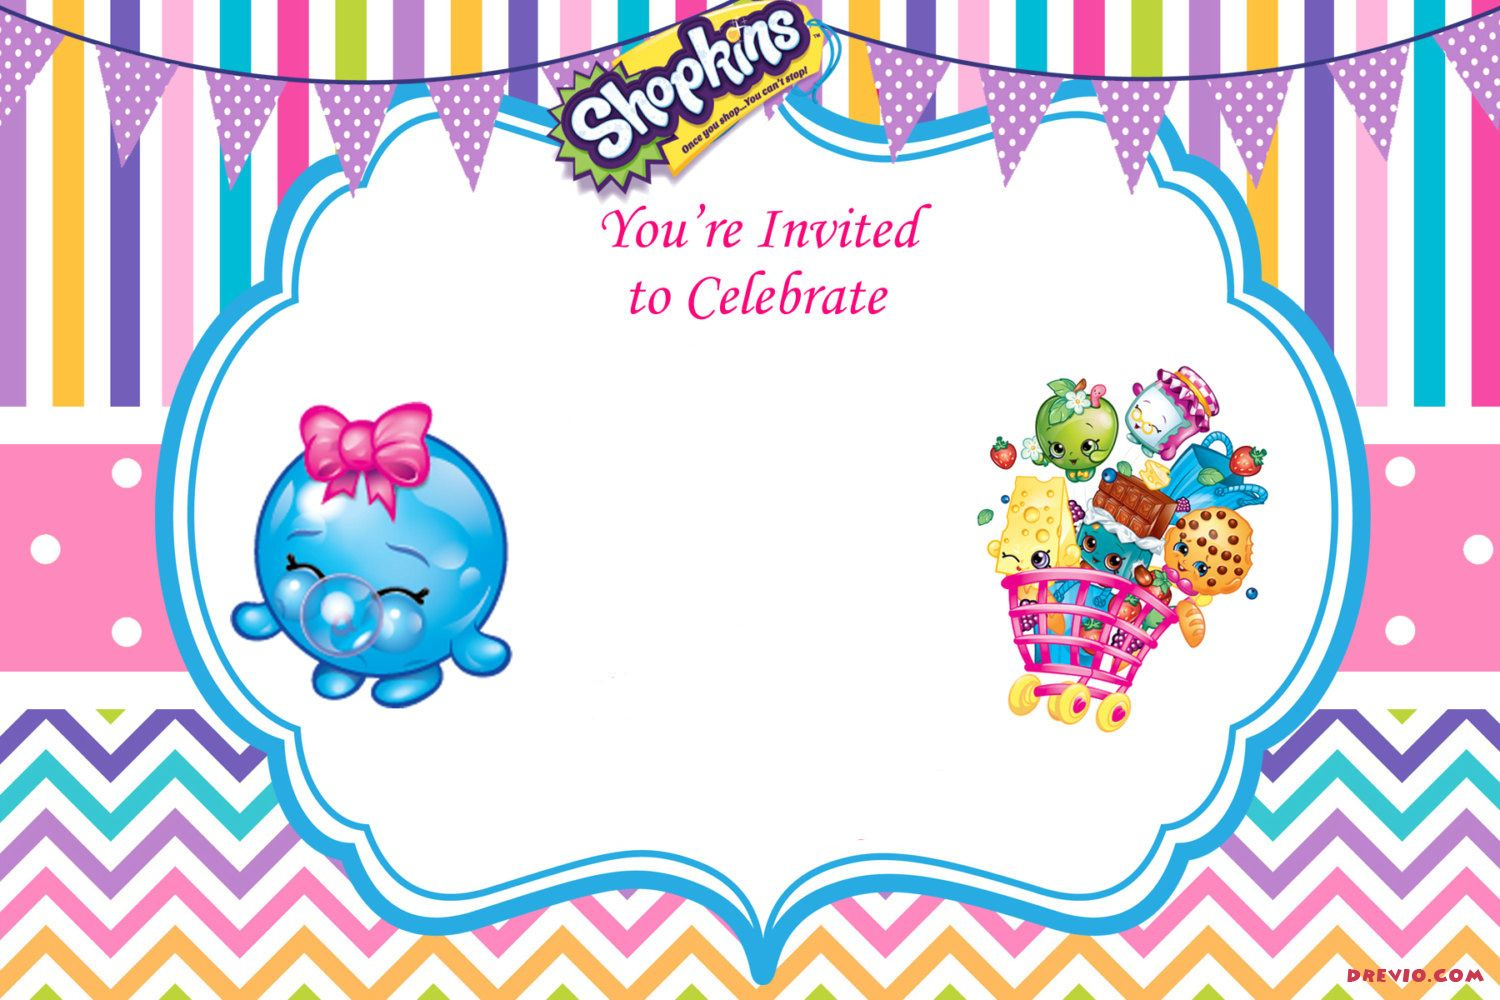 Updated - Free Printable Shopkins Birthday Invitation | Event - Free Printable Shopkins Invitations